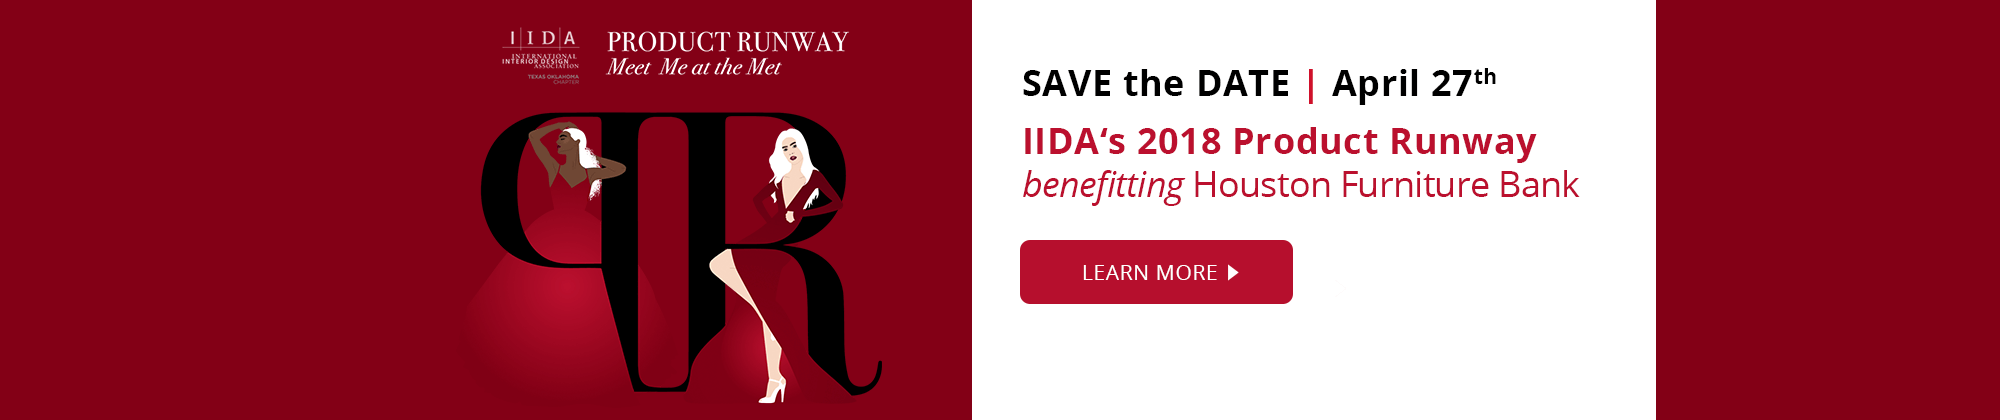 IIDA-Save-the-Date